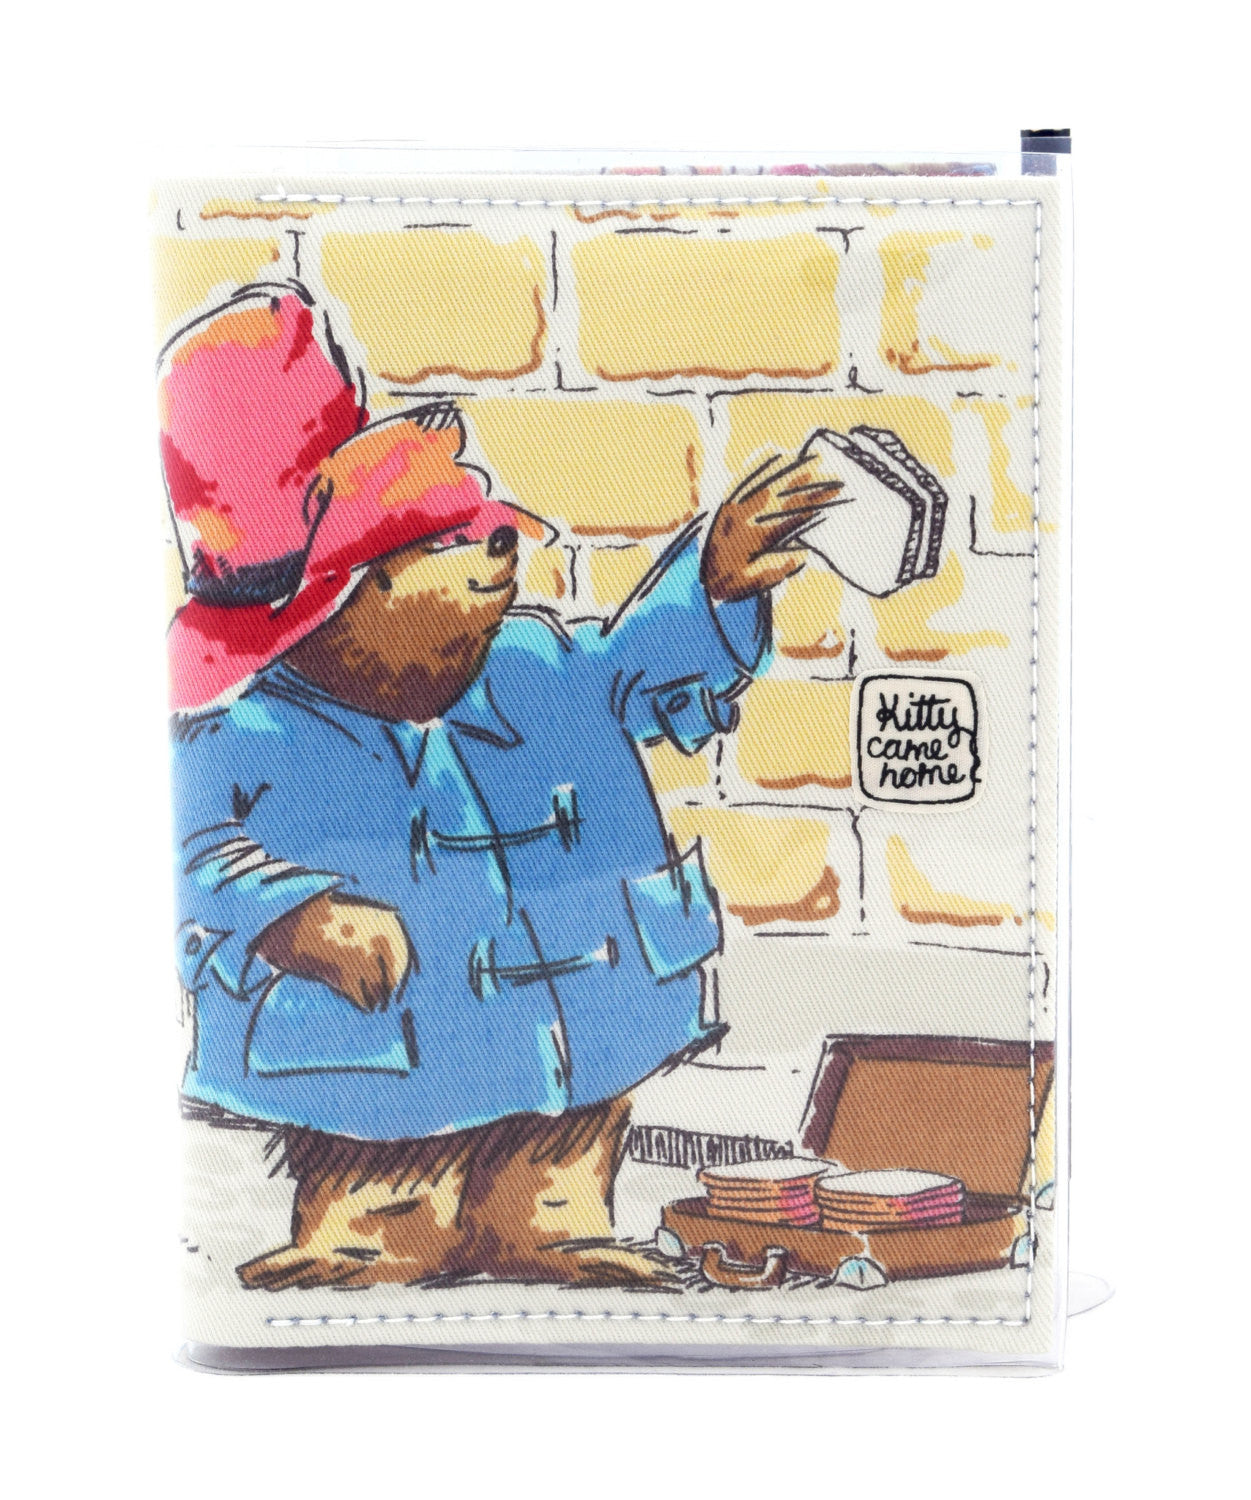 A6 Journal - Paddington Bear - packed lunch - vintage fabric